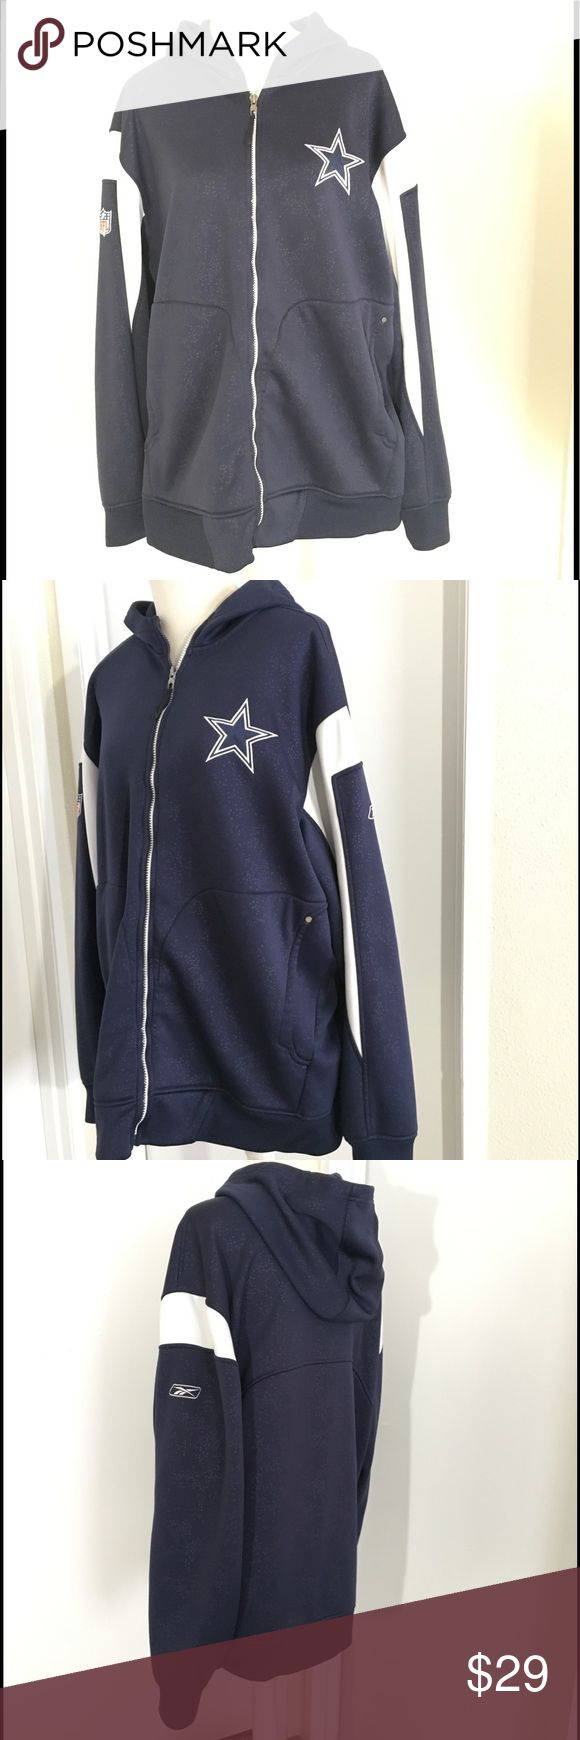 Dallas Cowboys NFL Zip up Sweater Size XL In great conditions. No stains pulls or flaws. Reebok Sweaters Zip Up